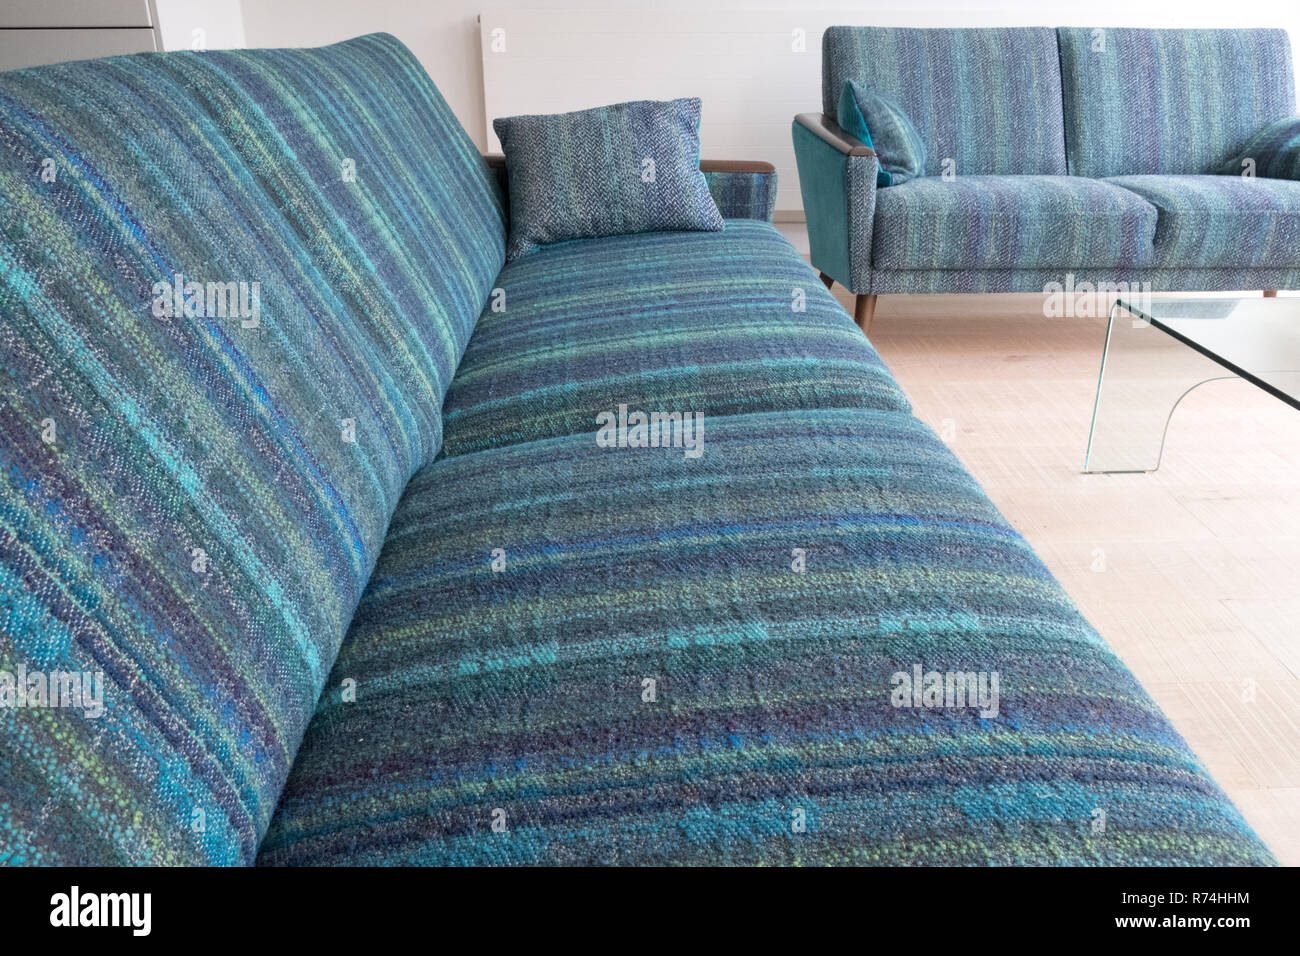 Two retro style lounge sofas upholstered in blue / green striped wool fabric - Stock Image